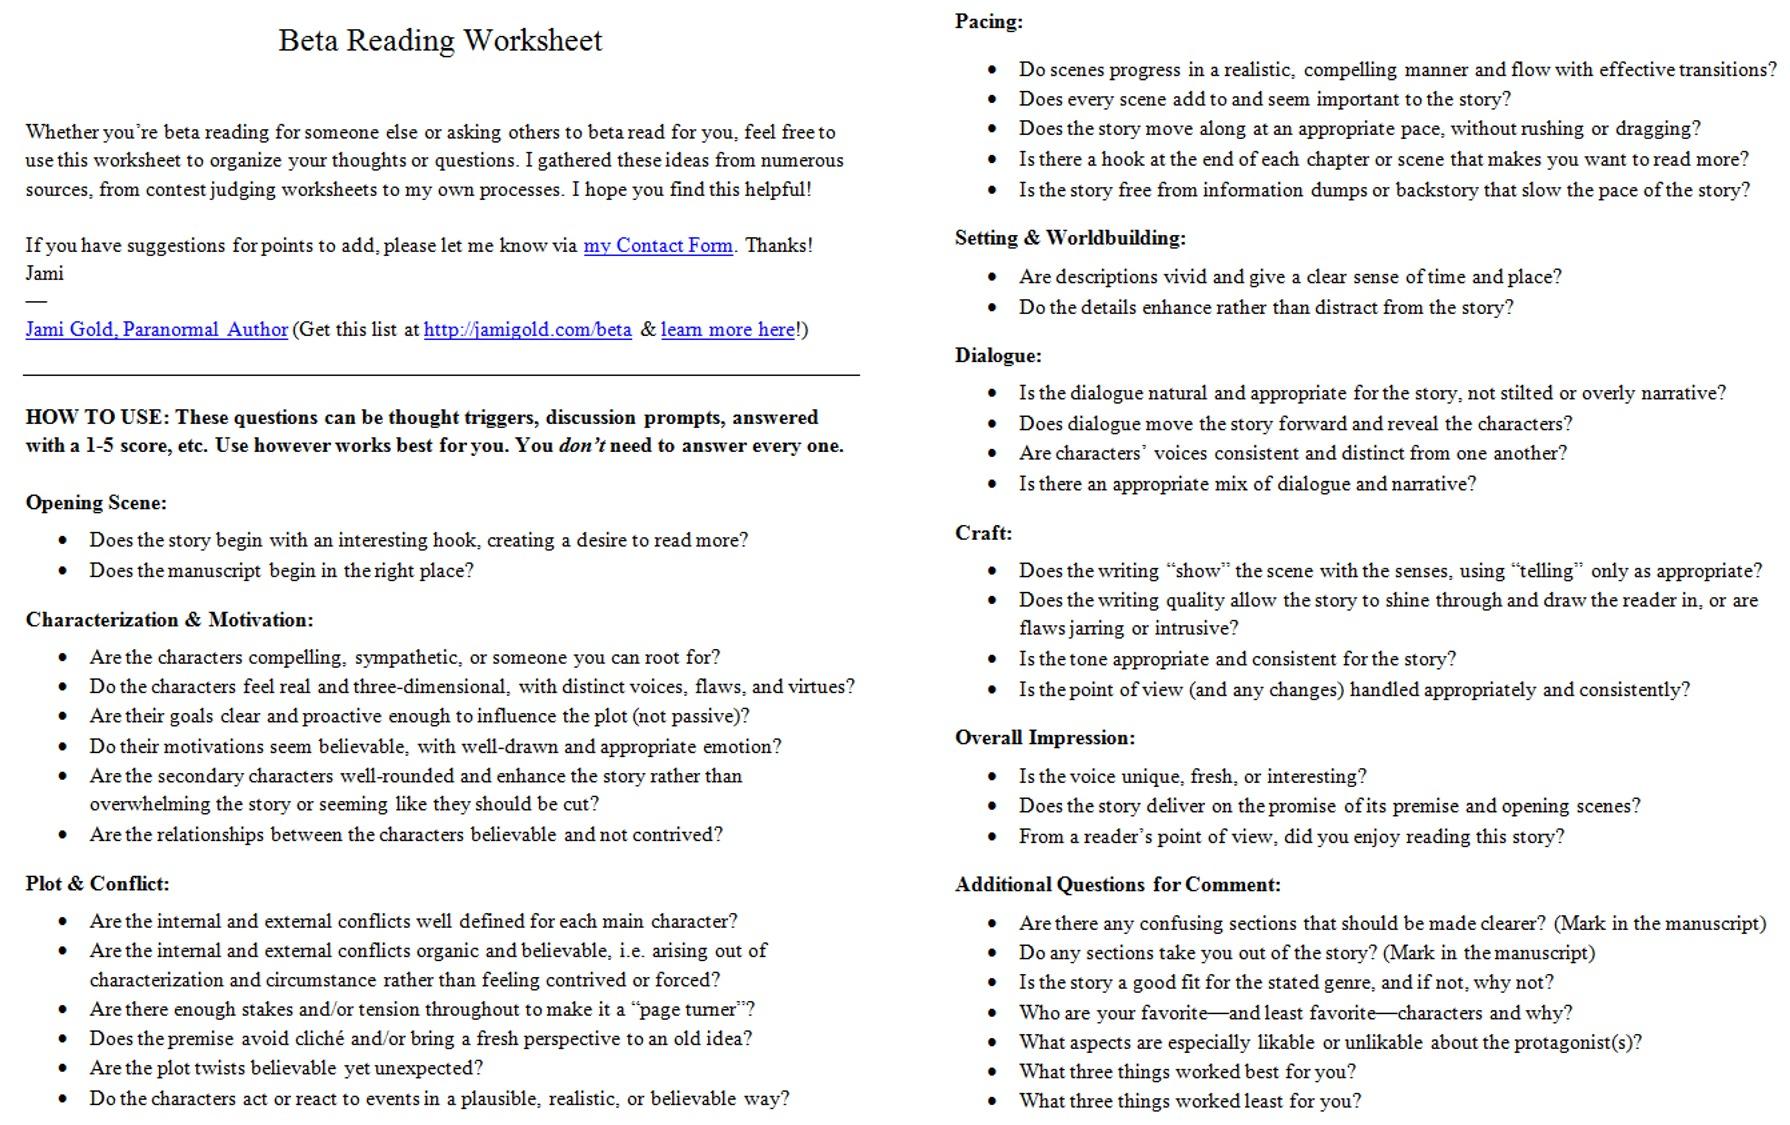 Aldiablosus  Scenic Worksheets For Writers  Jami Gold Paranormal Author With Fascinating Screen Shot Of The Twopage Beta Reading Worksheet With Astounding Coin Counting Worksheets Also Healthy Relationships Worksheet In Addition Columbus Day Worksheets And Number  Worksheets As Well As Reaction Types Worksheet Answers Additionally Solving Systems Of Linear Inequalities Worksheet From Jamigoldcom With Aldiablosus  Fascinating Worksheets For Writers  Jami Gold Paranormal Author With Astounding Screen Shot Of The Twopage Beta Reading Worksheet And Scenic Coin Counting Worksheets Also Healthy Relationships Worksheet In Addition Columbus Day Worksheets From Jamigoldcom